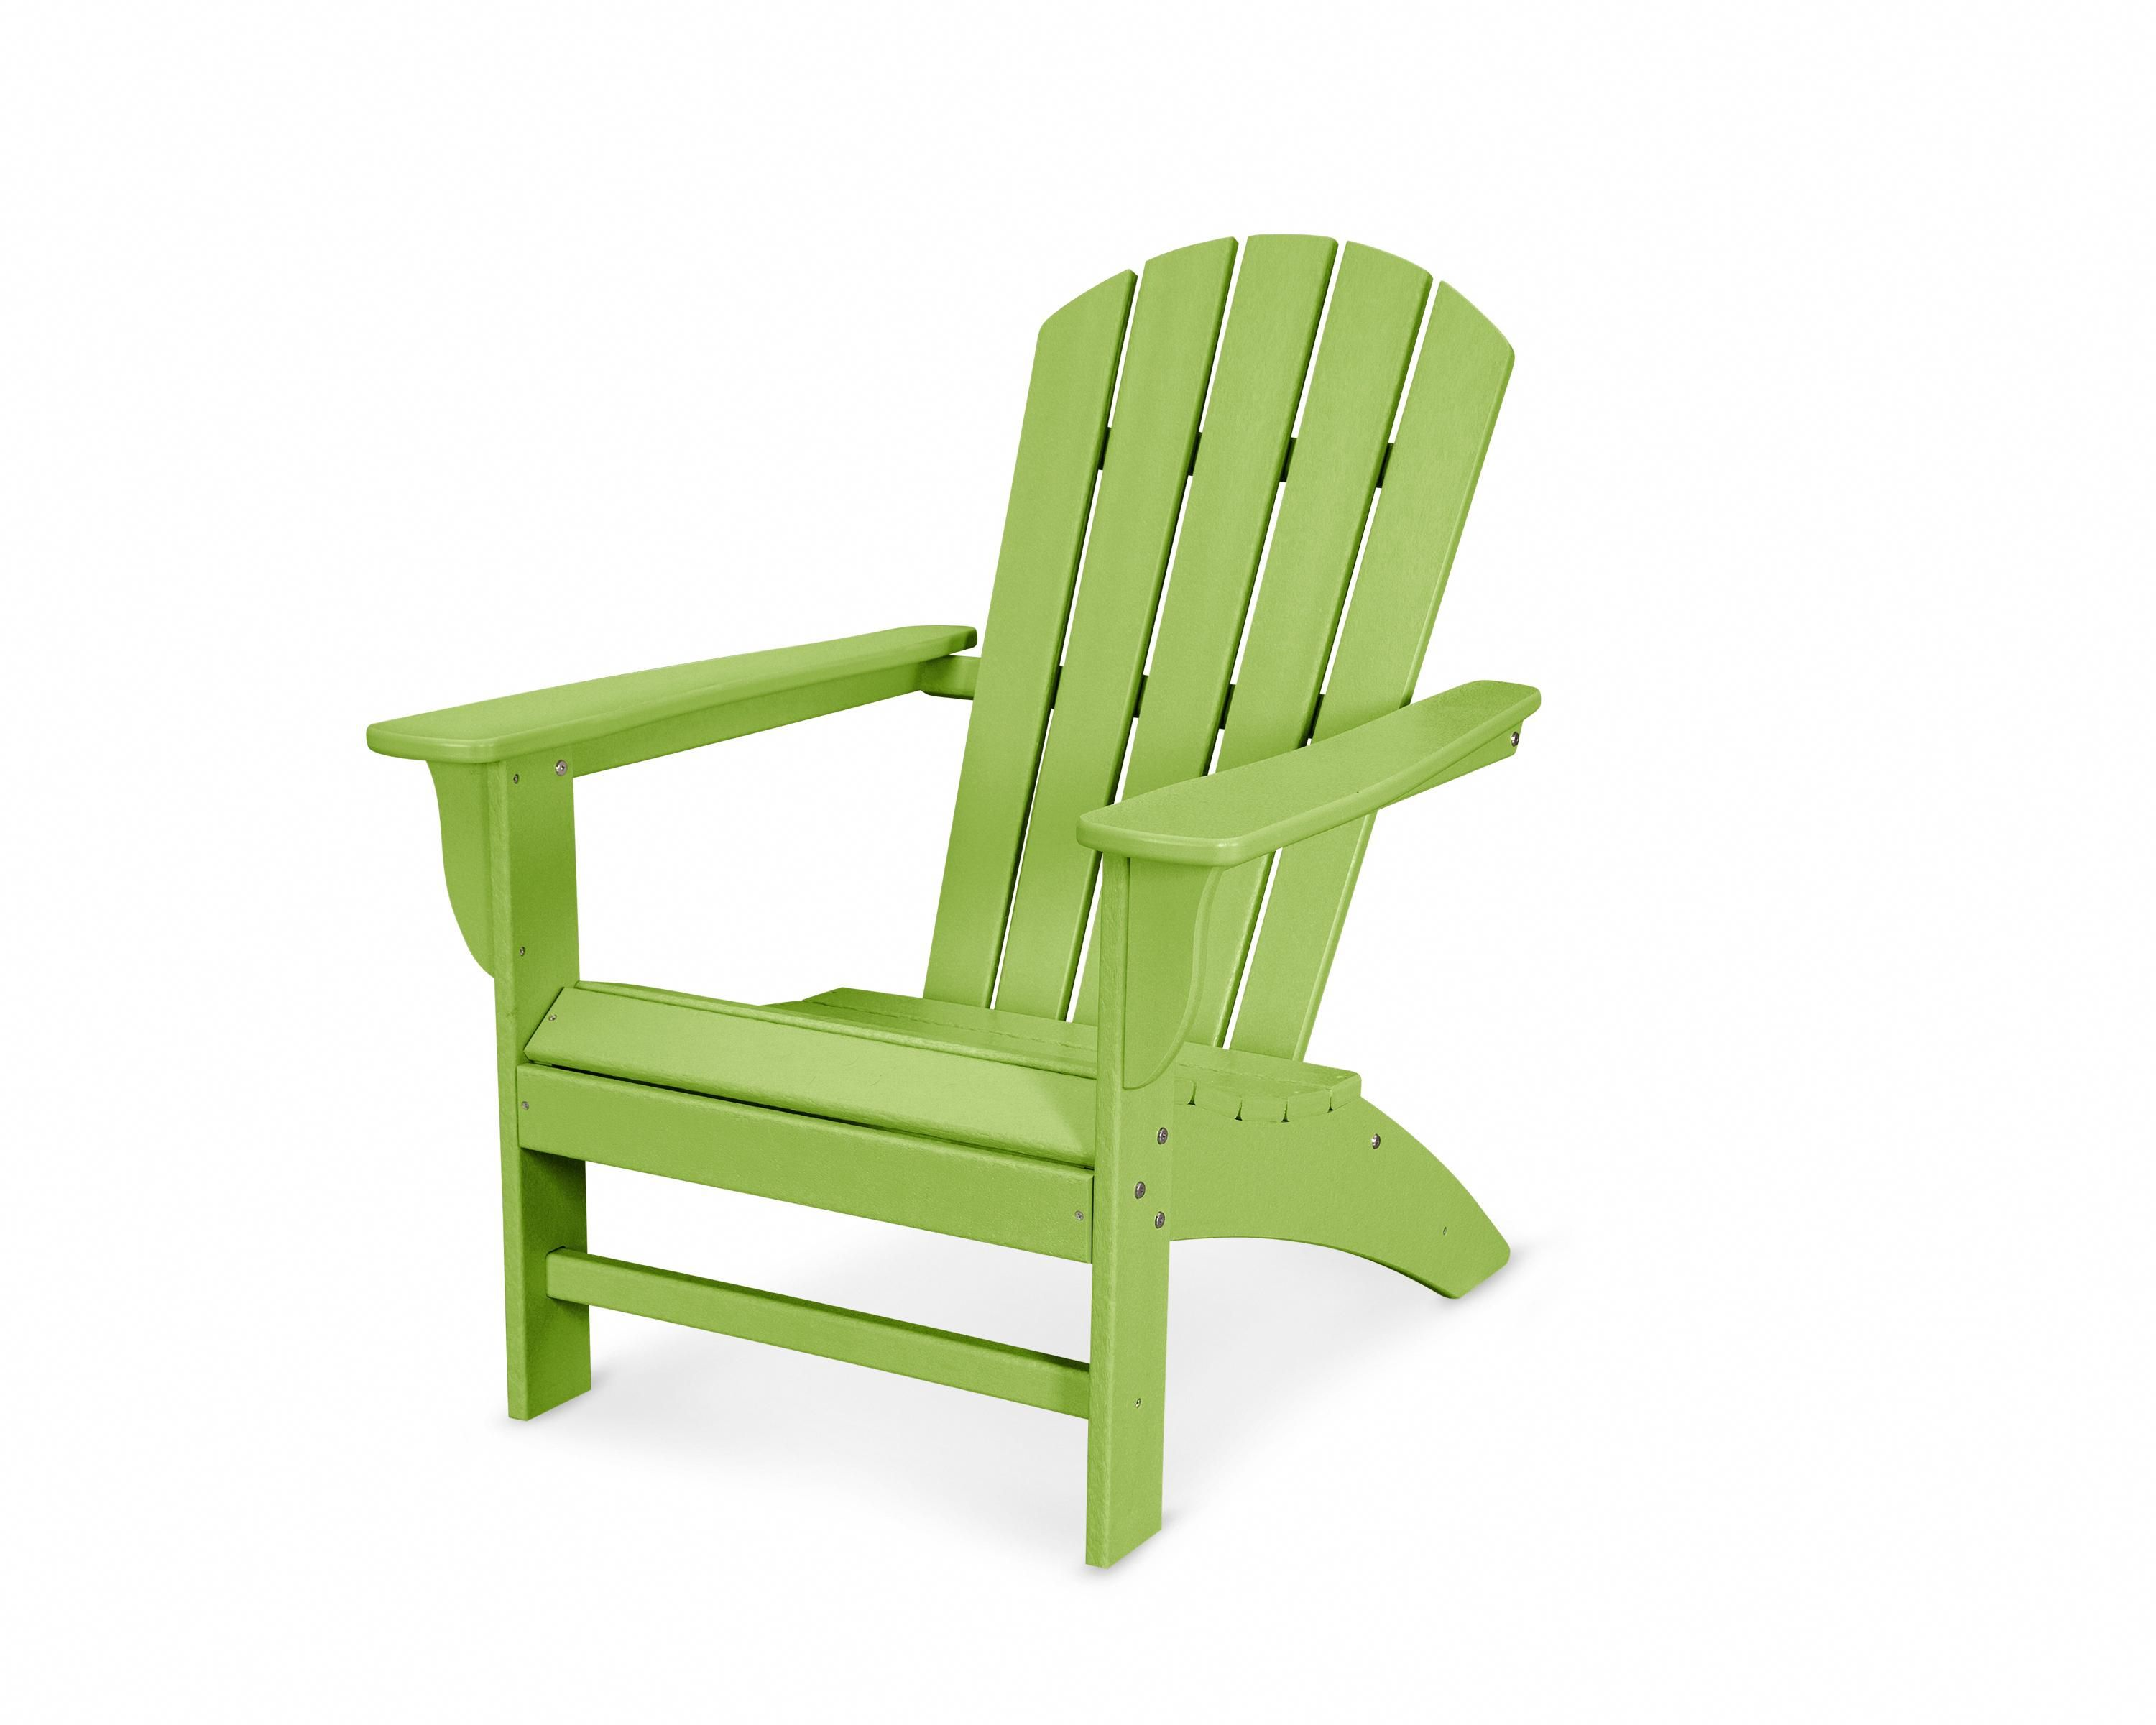 Chairs bed bath and beyond bestchairsforcamping id